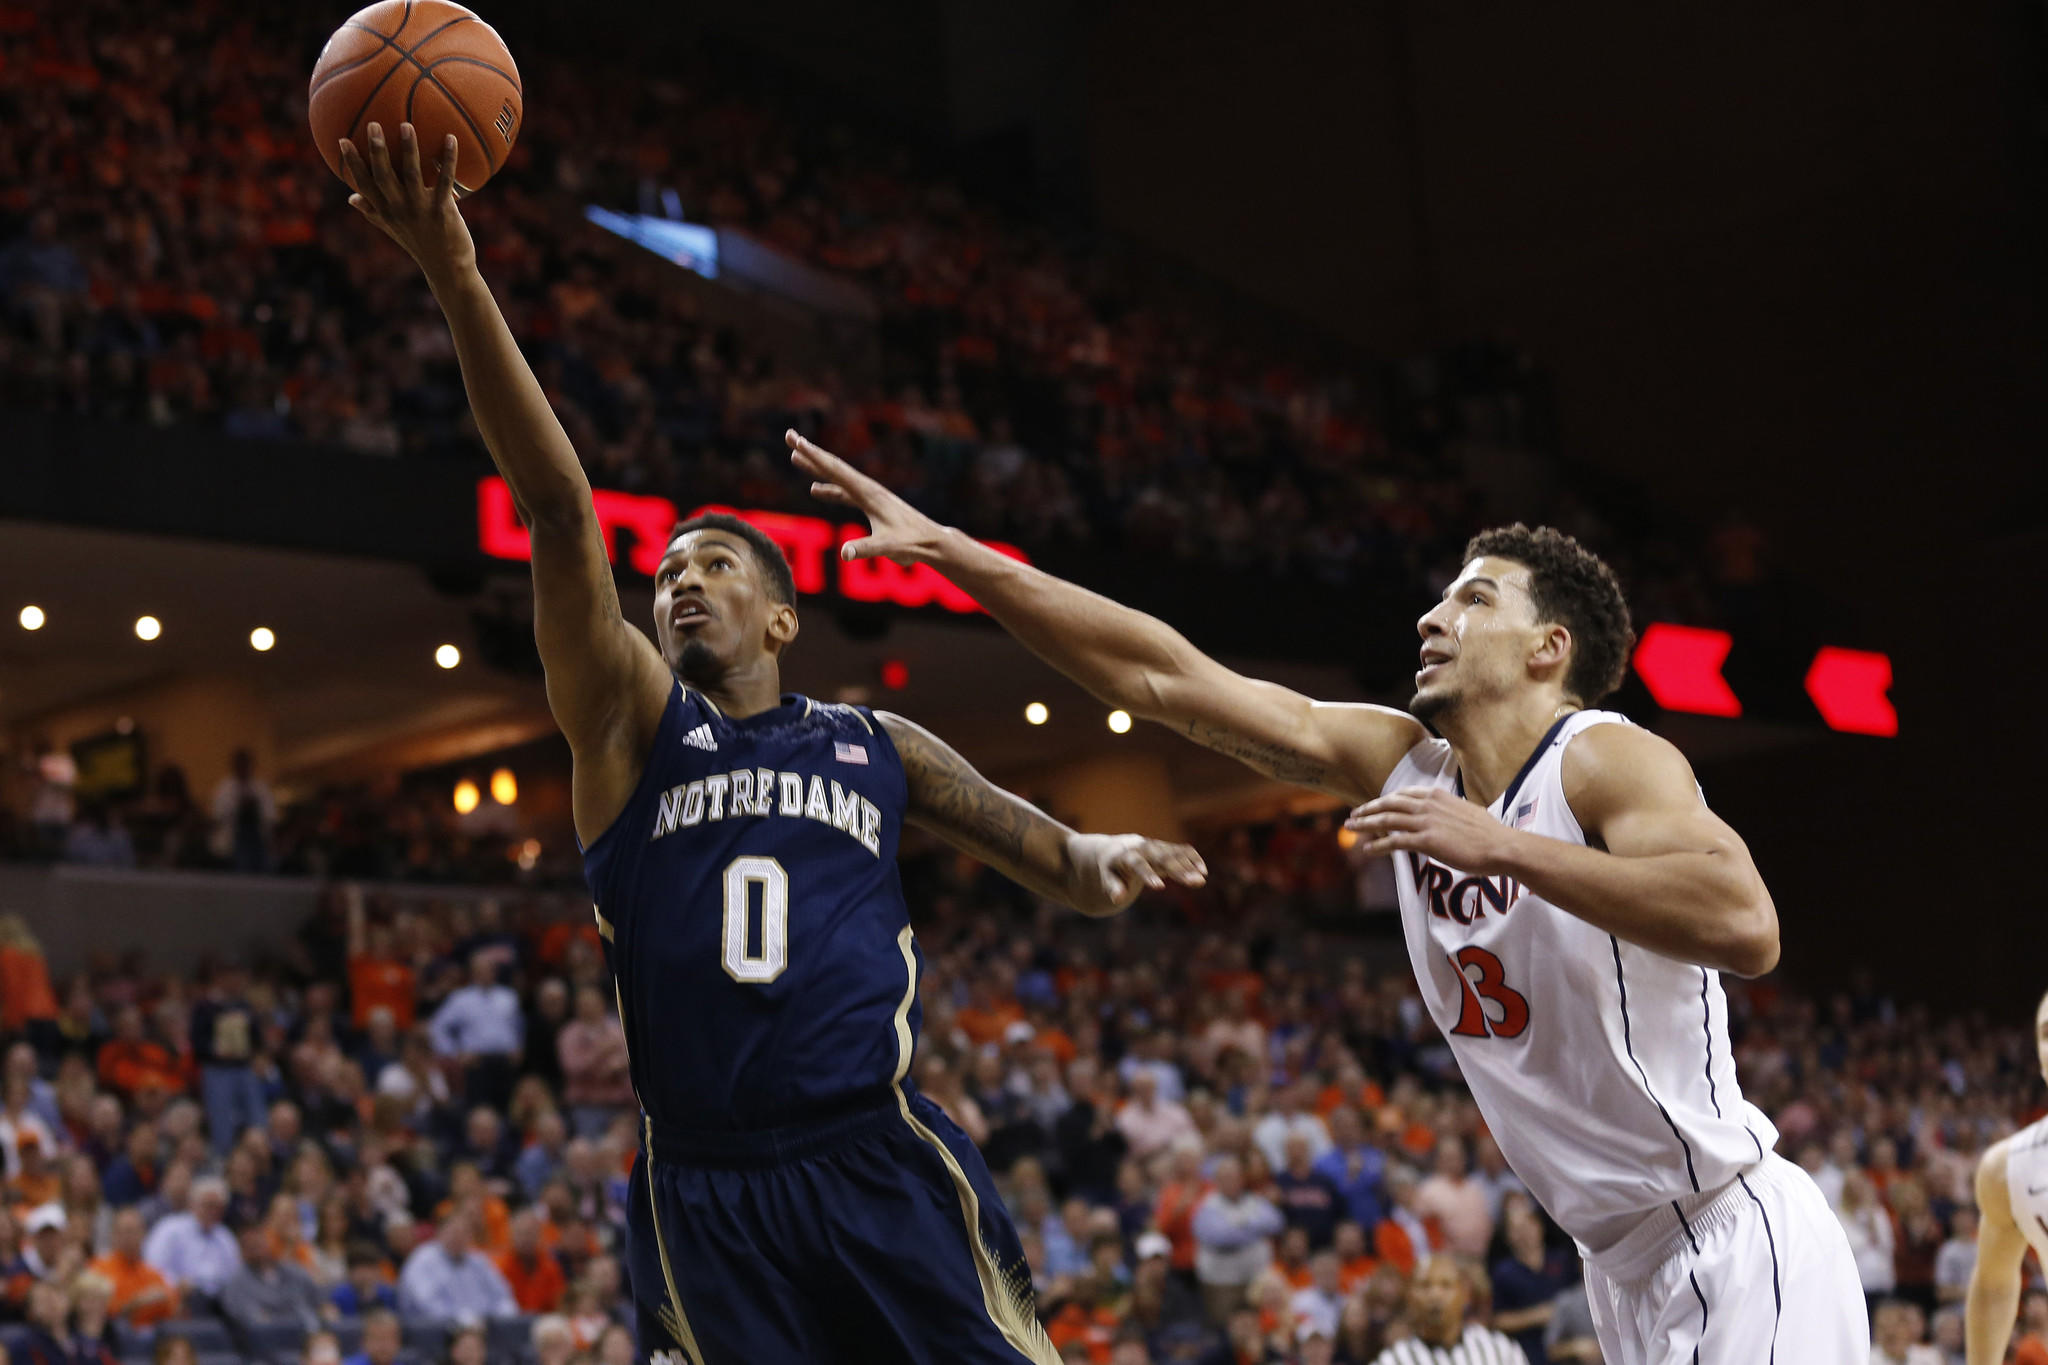 Notre Dame guard Eric Atkins drives past Virginia forward Anthony Gill in the first half.